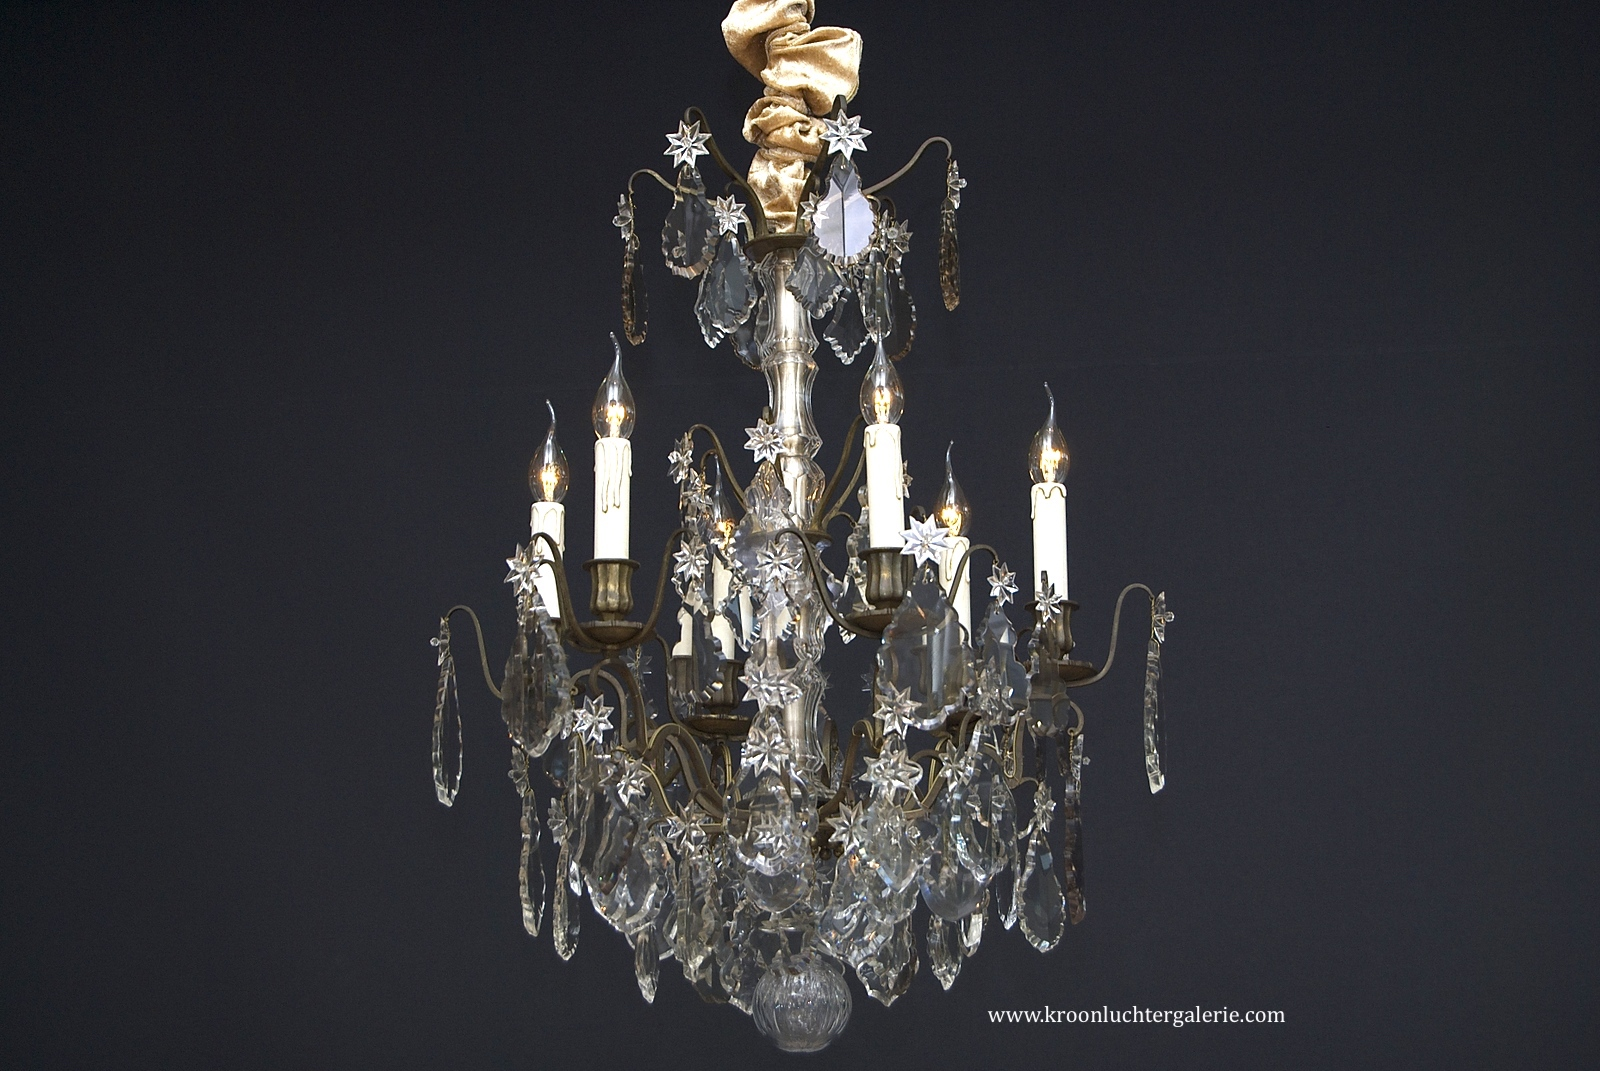 A 19th century French Chandelier